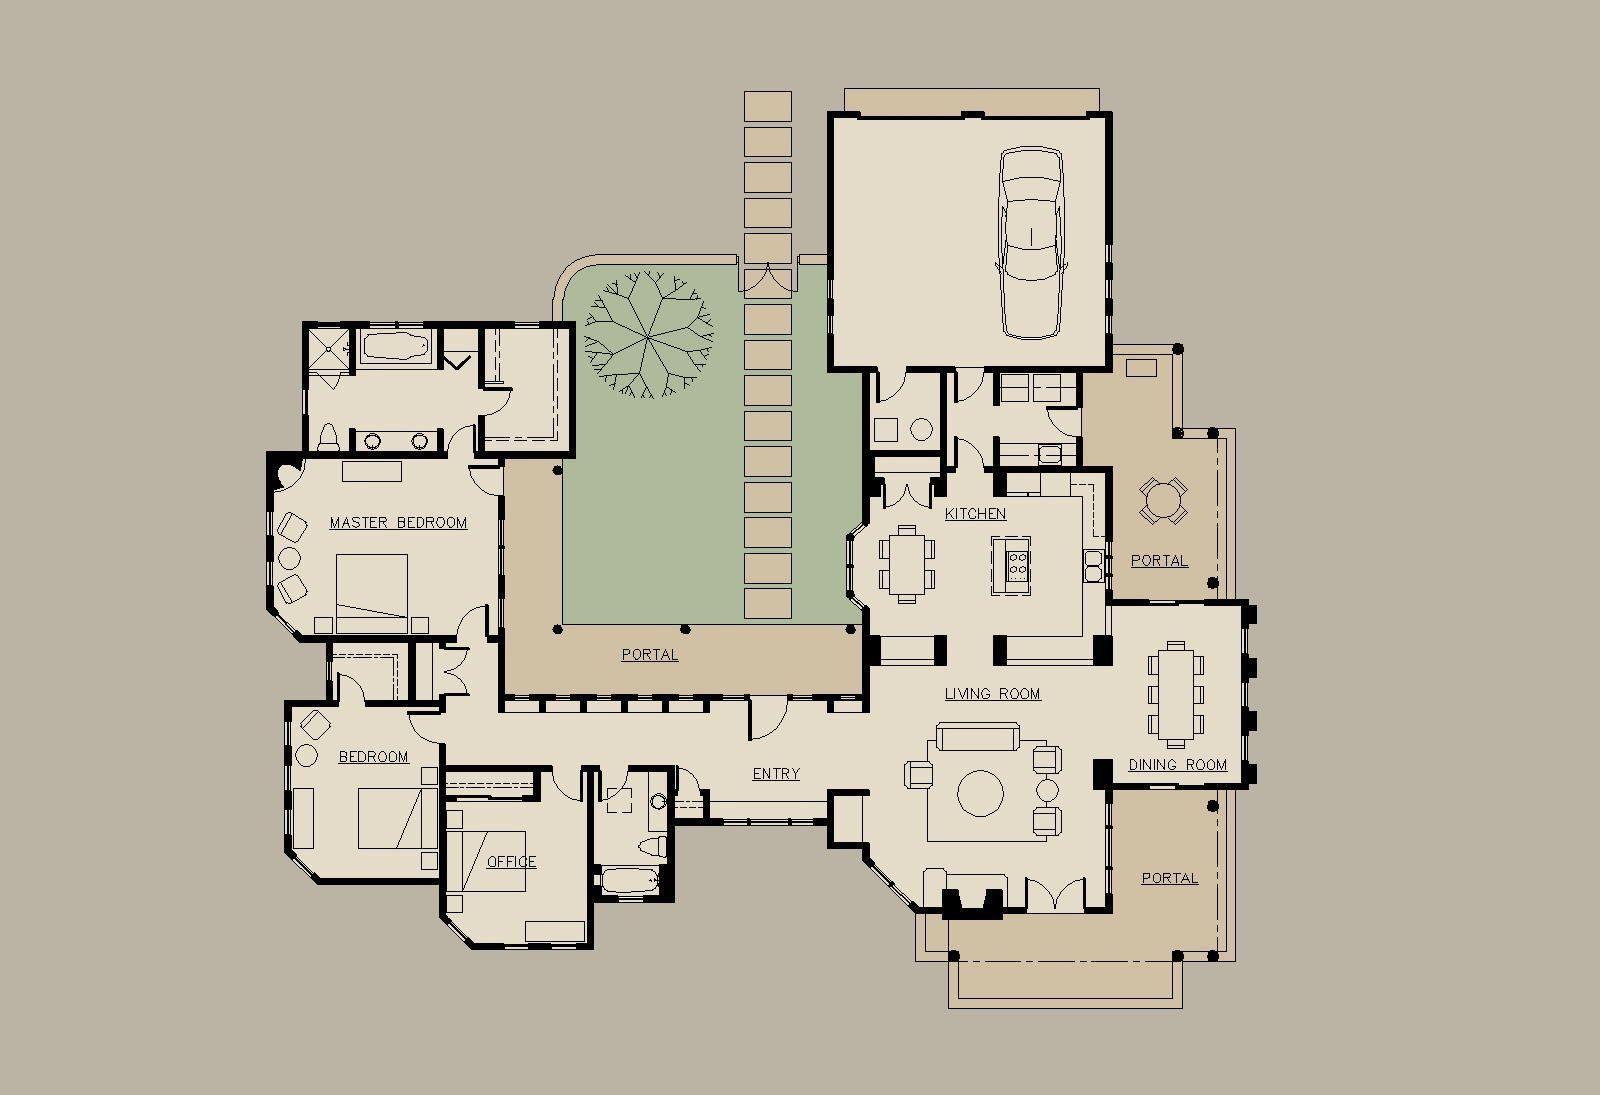 U Shaped House Floor Plans With Courtyard Courtyard House Plans House Plans One Story Mediterranean House Plans